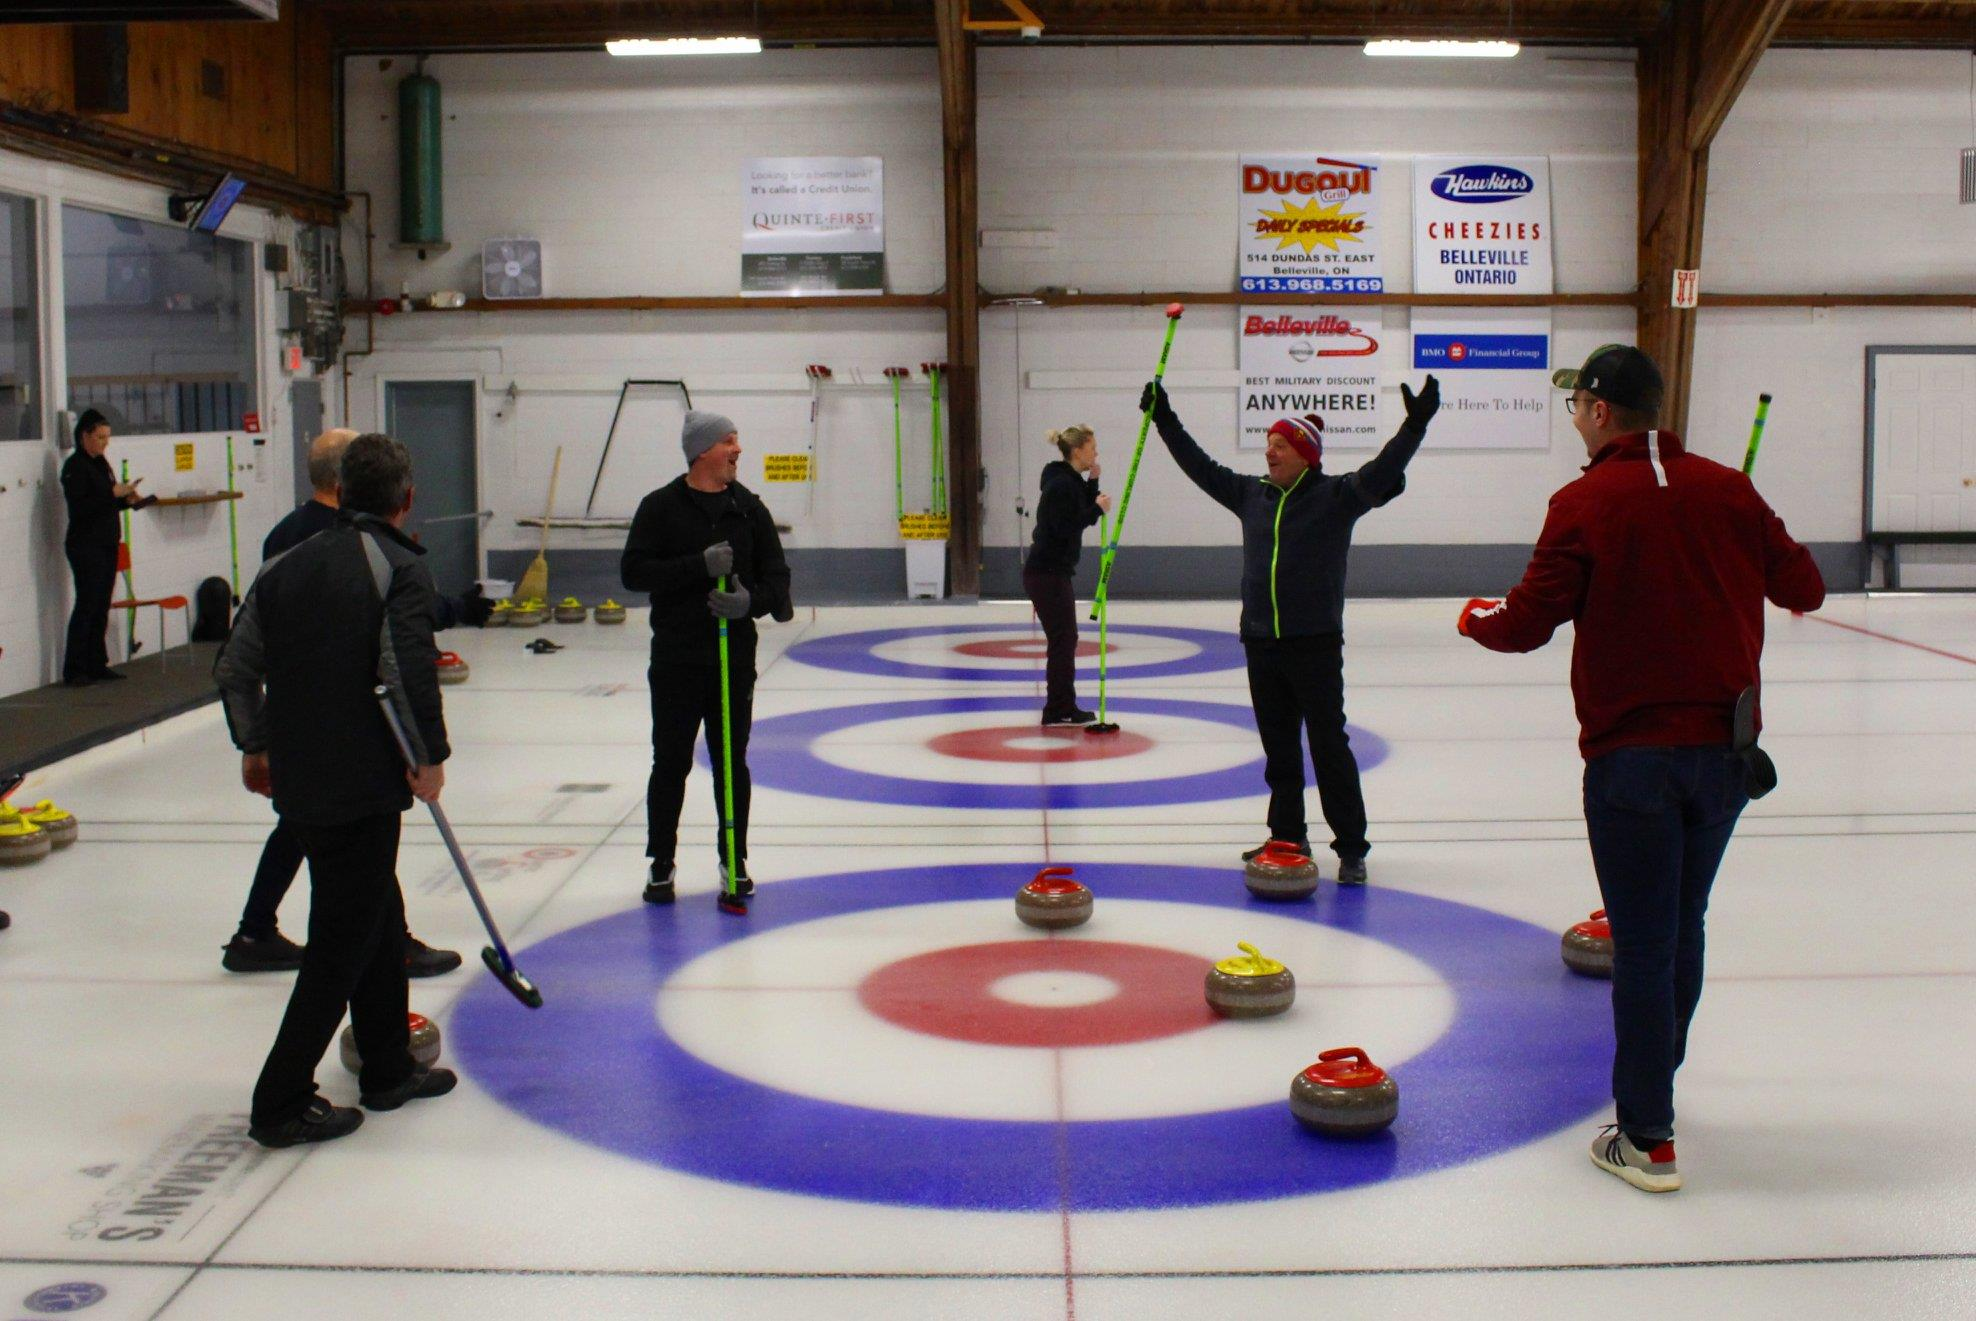 Individuals playing a game of curling